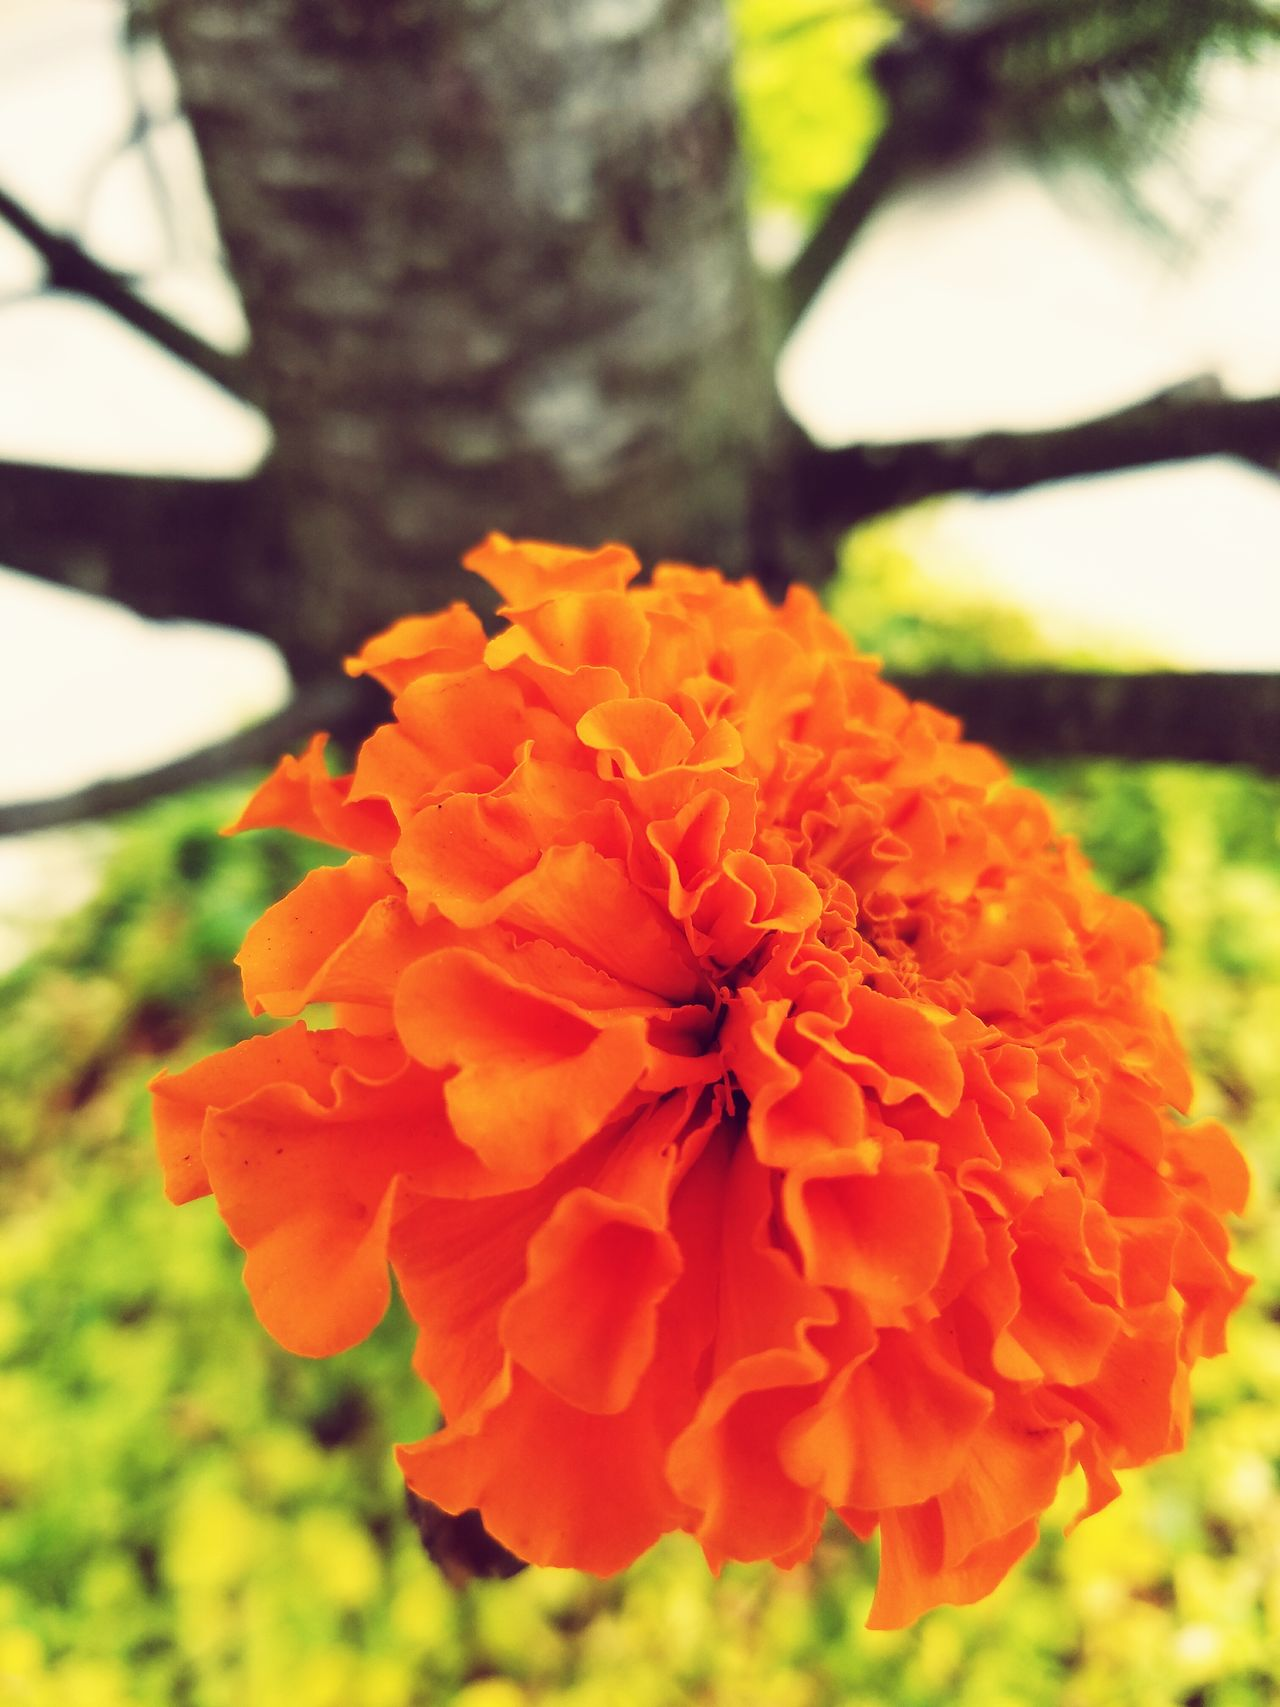 A beautiful flower Flower Close-up Orange Color Beauty In Nature Flower Head Focus On Foreground Vibrant Color Day In Bloom Outdoors No People